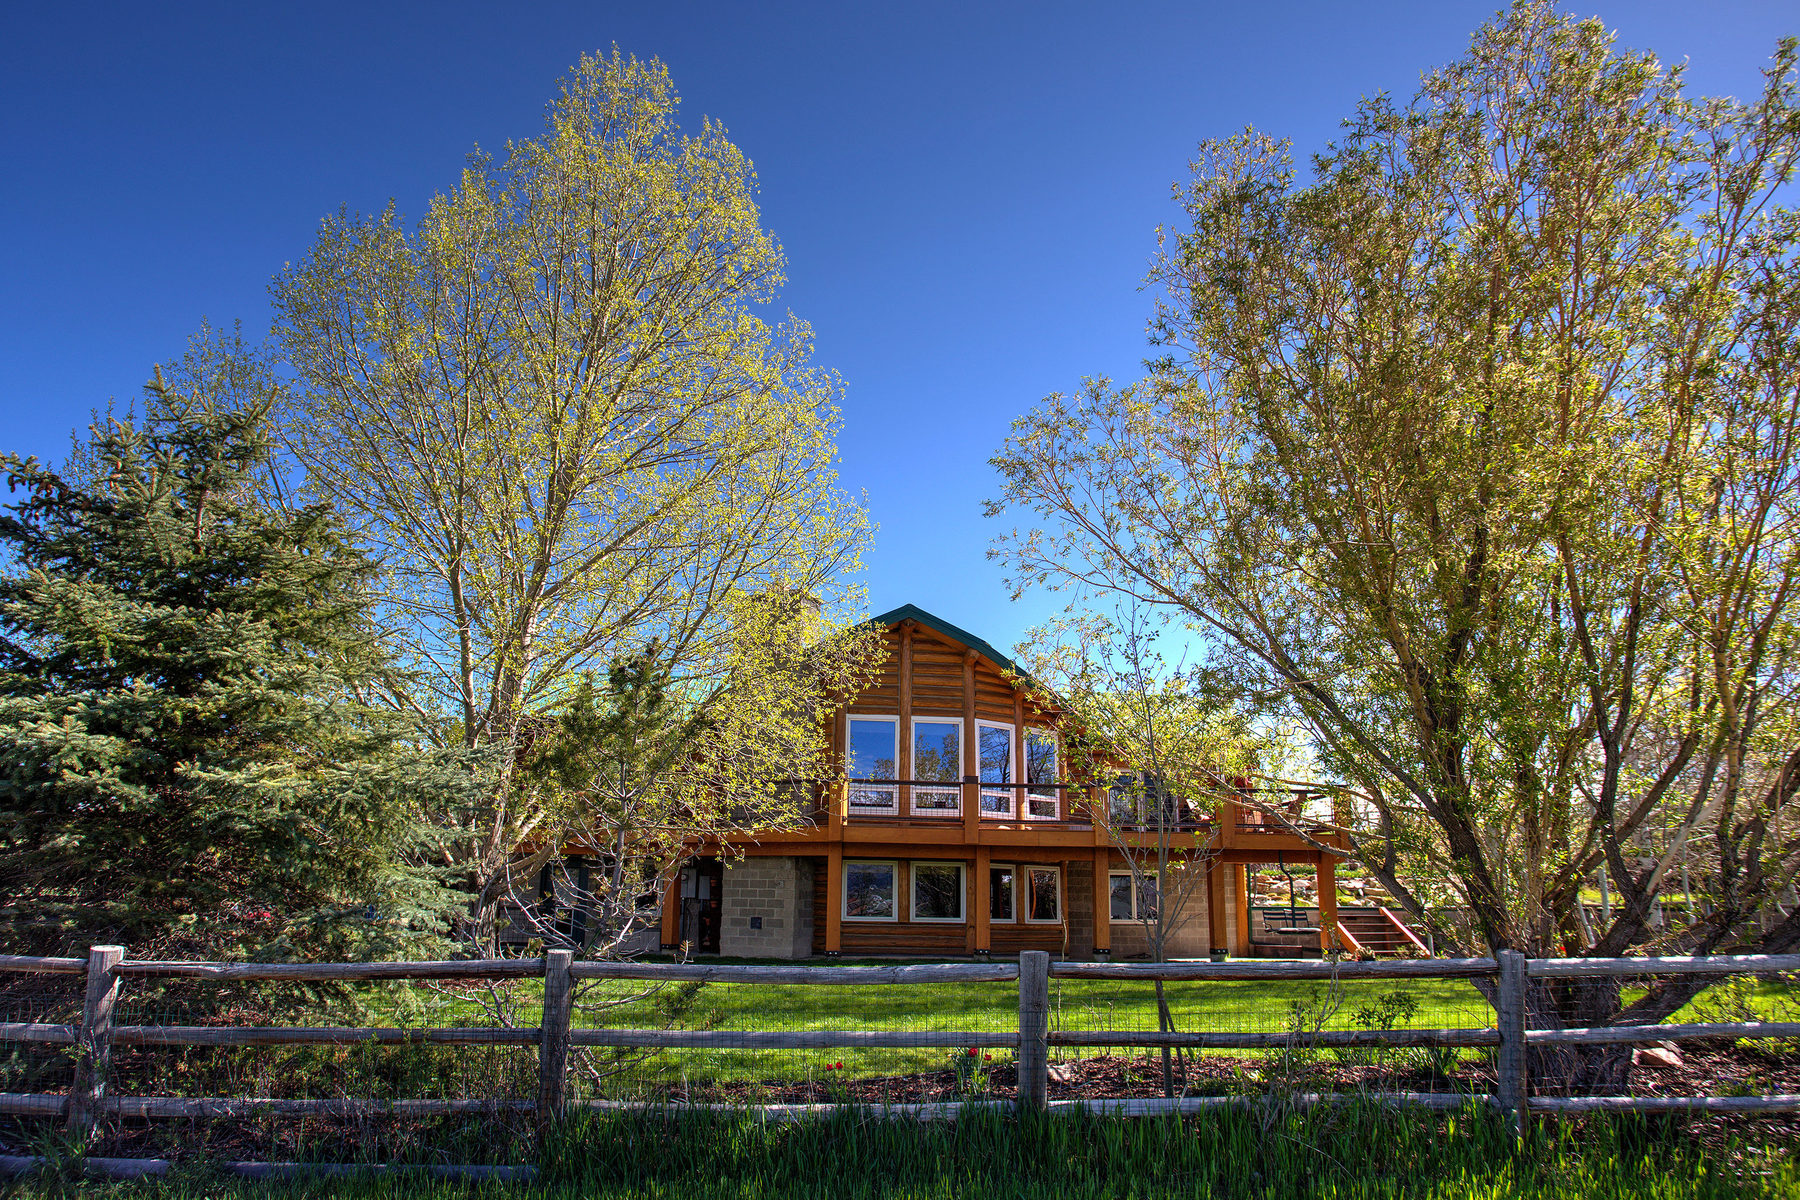 Moradia para Venda às Gorgeous Log Home in Silver Creek 1116 E Parkway Dr Park City, Utah, 84098 Estados Unidos